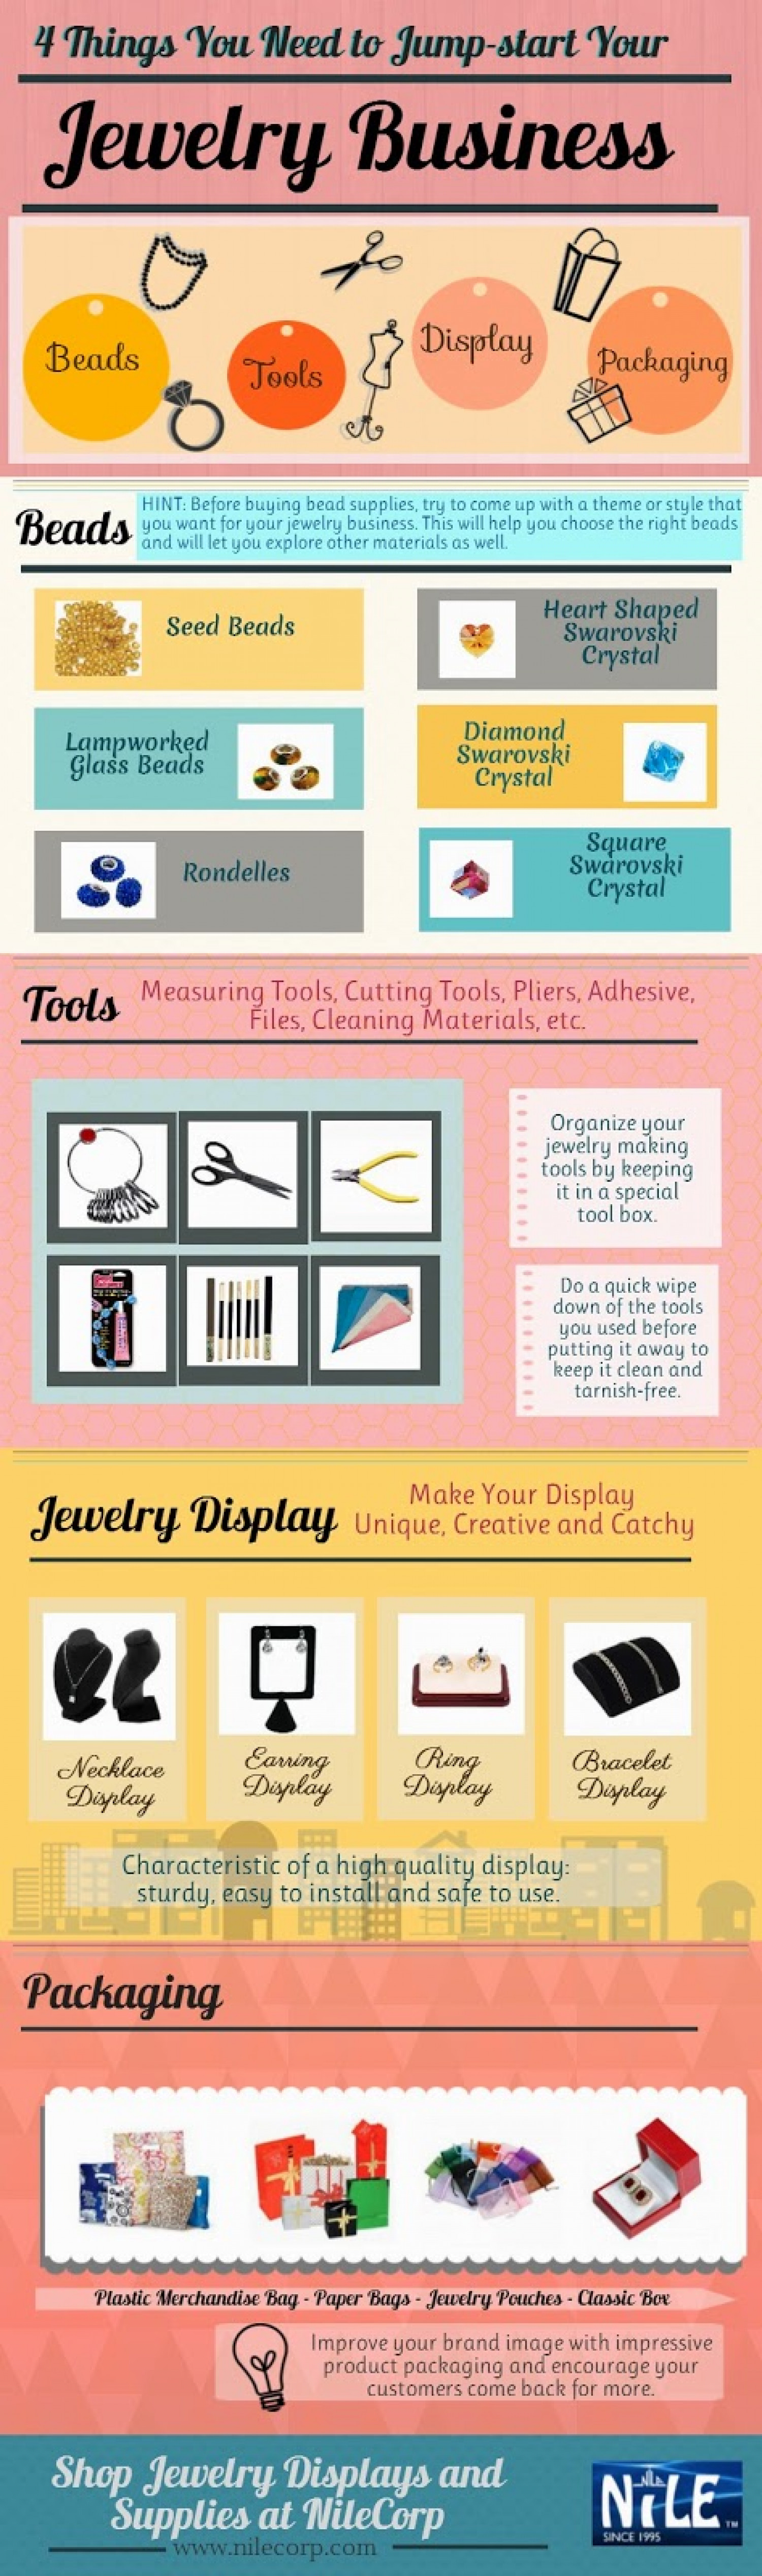 4 Things You Need to Jump-start Your Jewelry Business Infographic